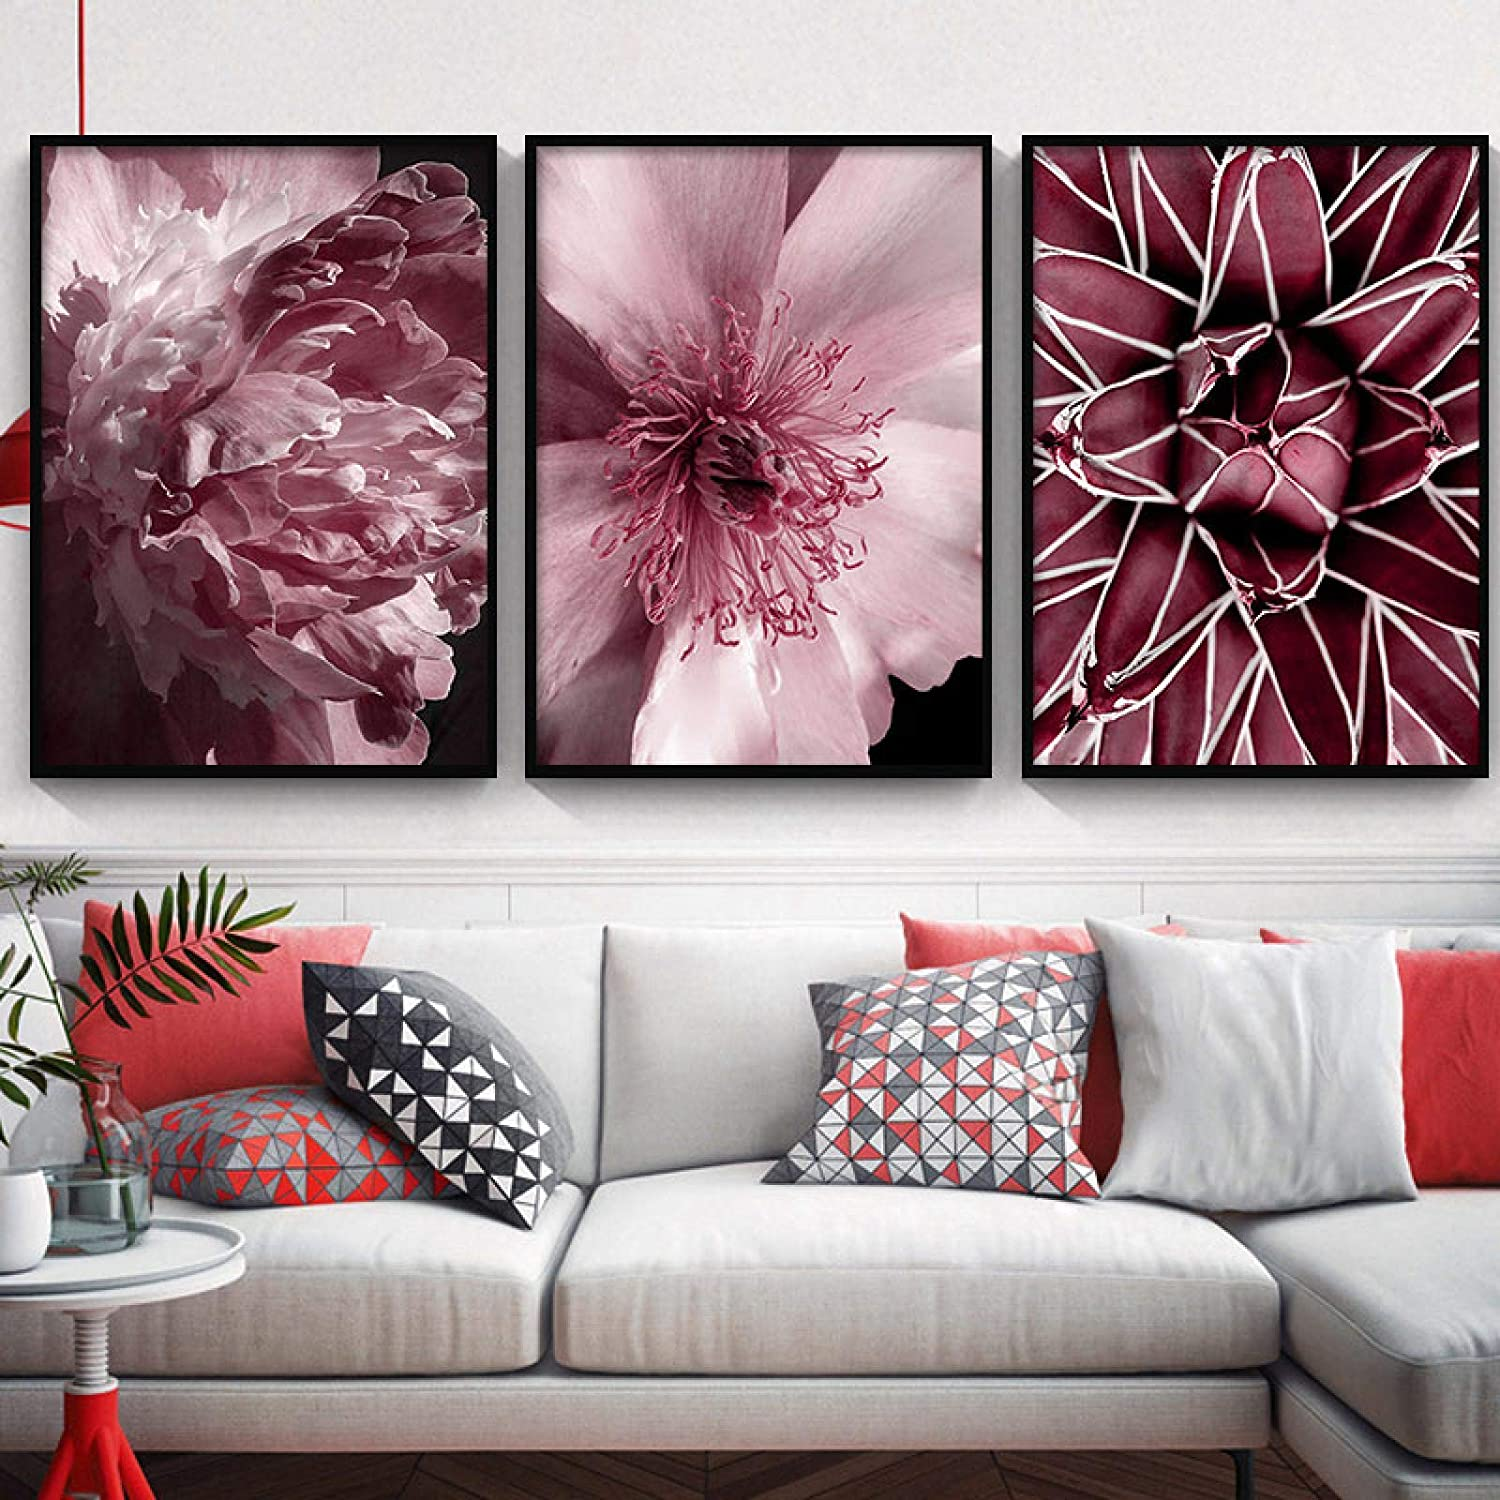 Sunsightly Print Max Houston Mall 49% OFF on Canvas Nordic Posters and Big Prints Pink Pe